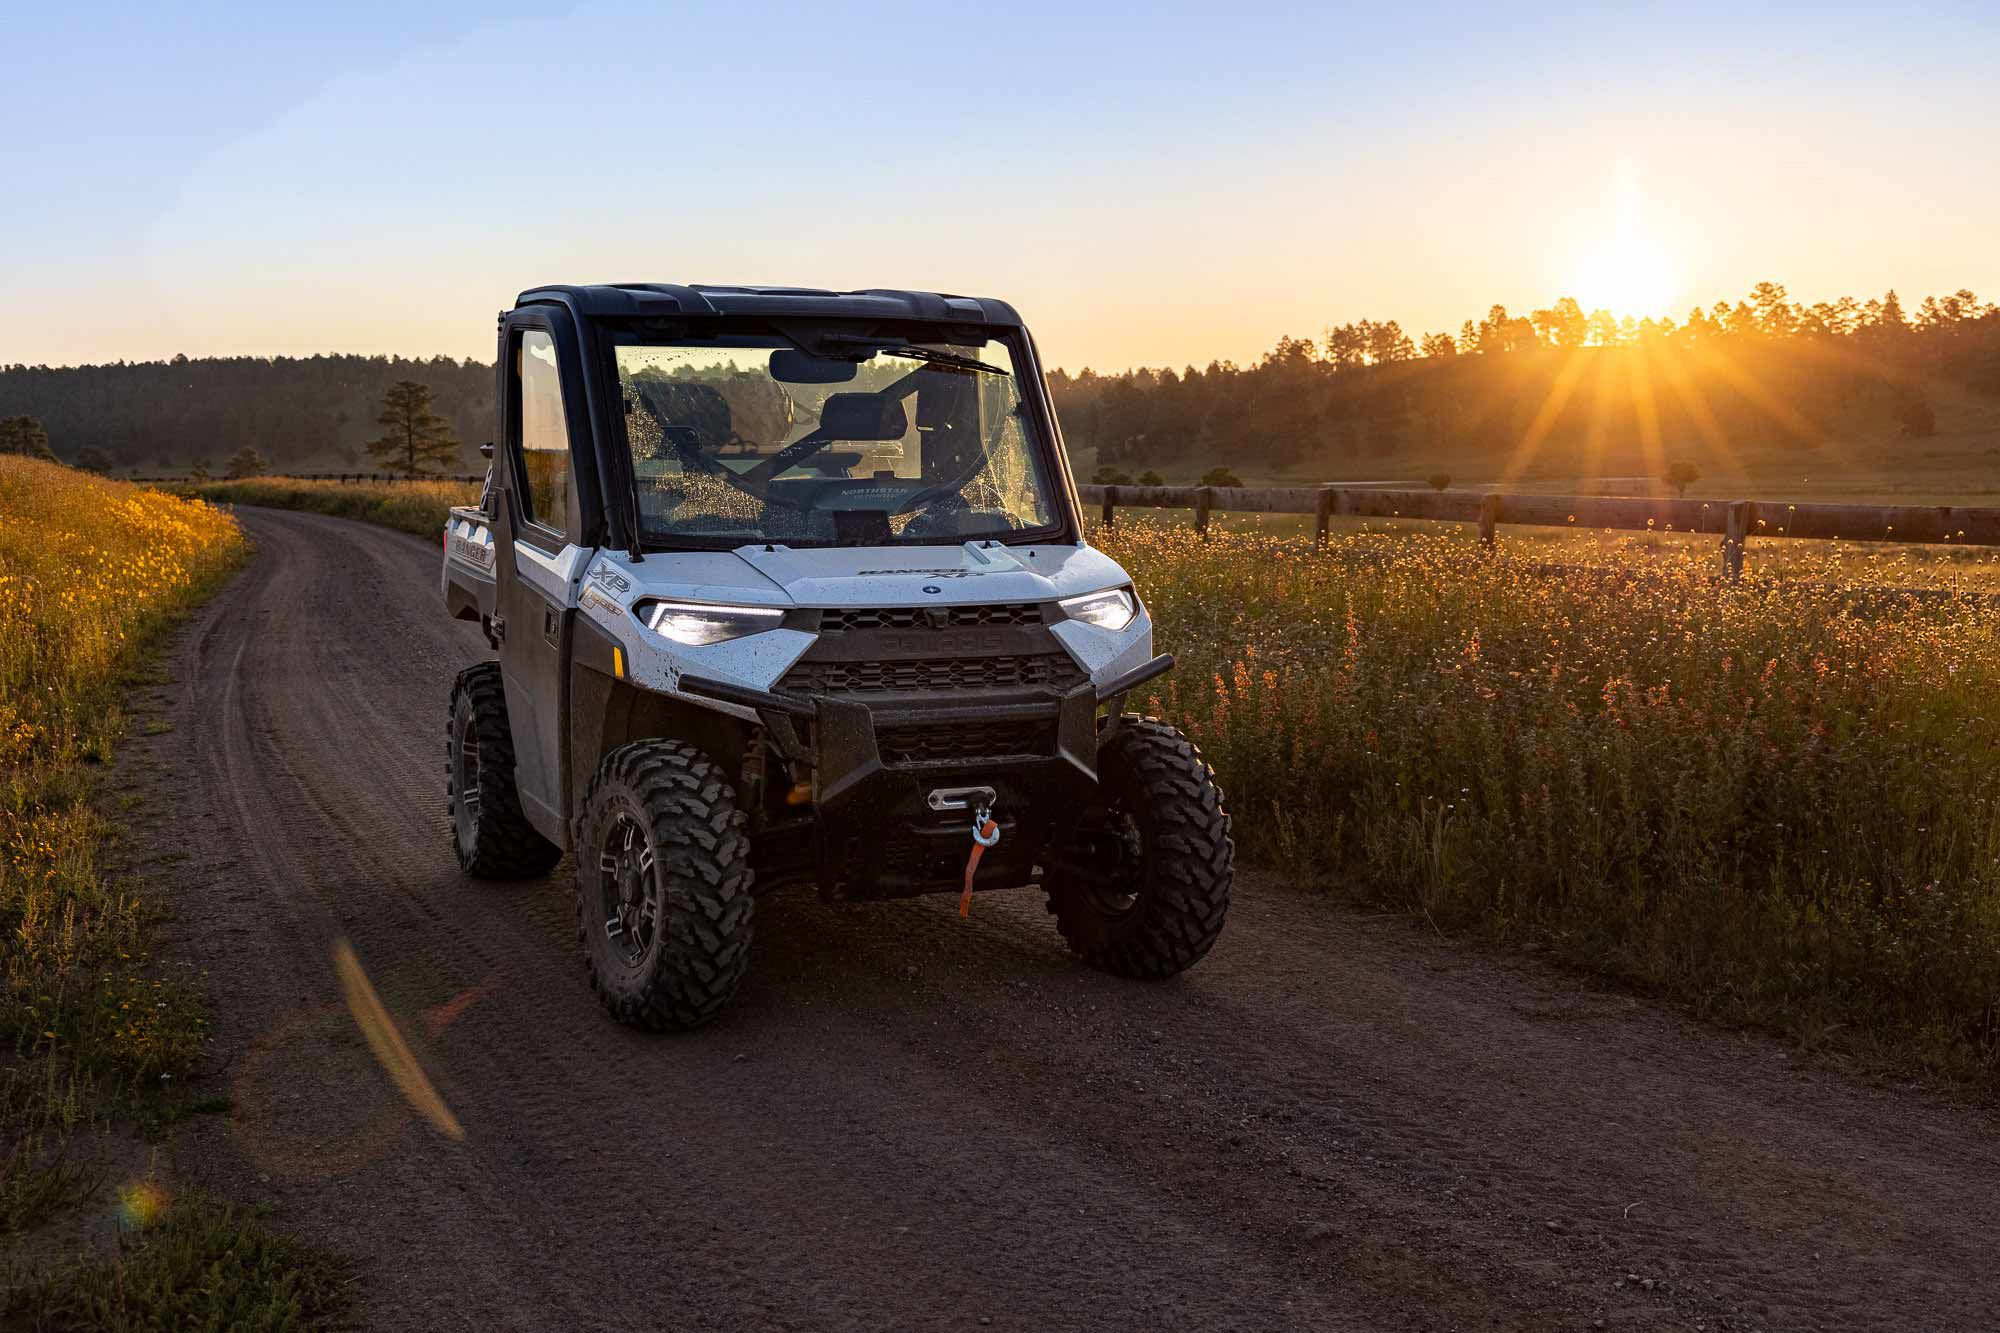 Over a week in the Gila, we covered more than 200 trouble-free miles in the 2021 Polaris Ranger XP 1000 Trail Boss NorthStar Edition. A utility-biased blend of work and recreation, the Trail Boss NorthStar Edition is made for terrain like this.